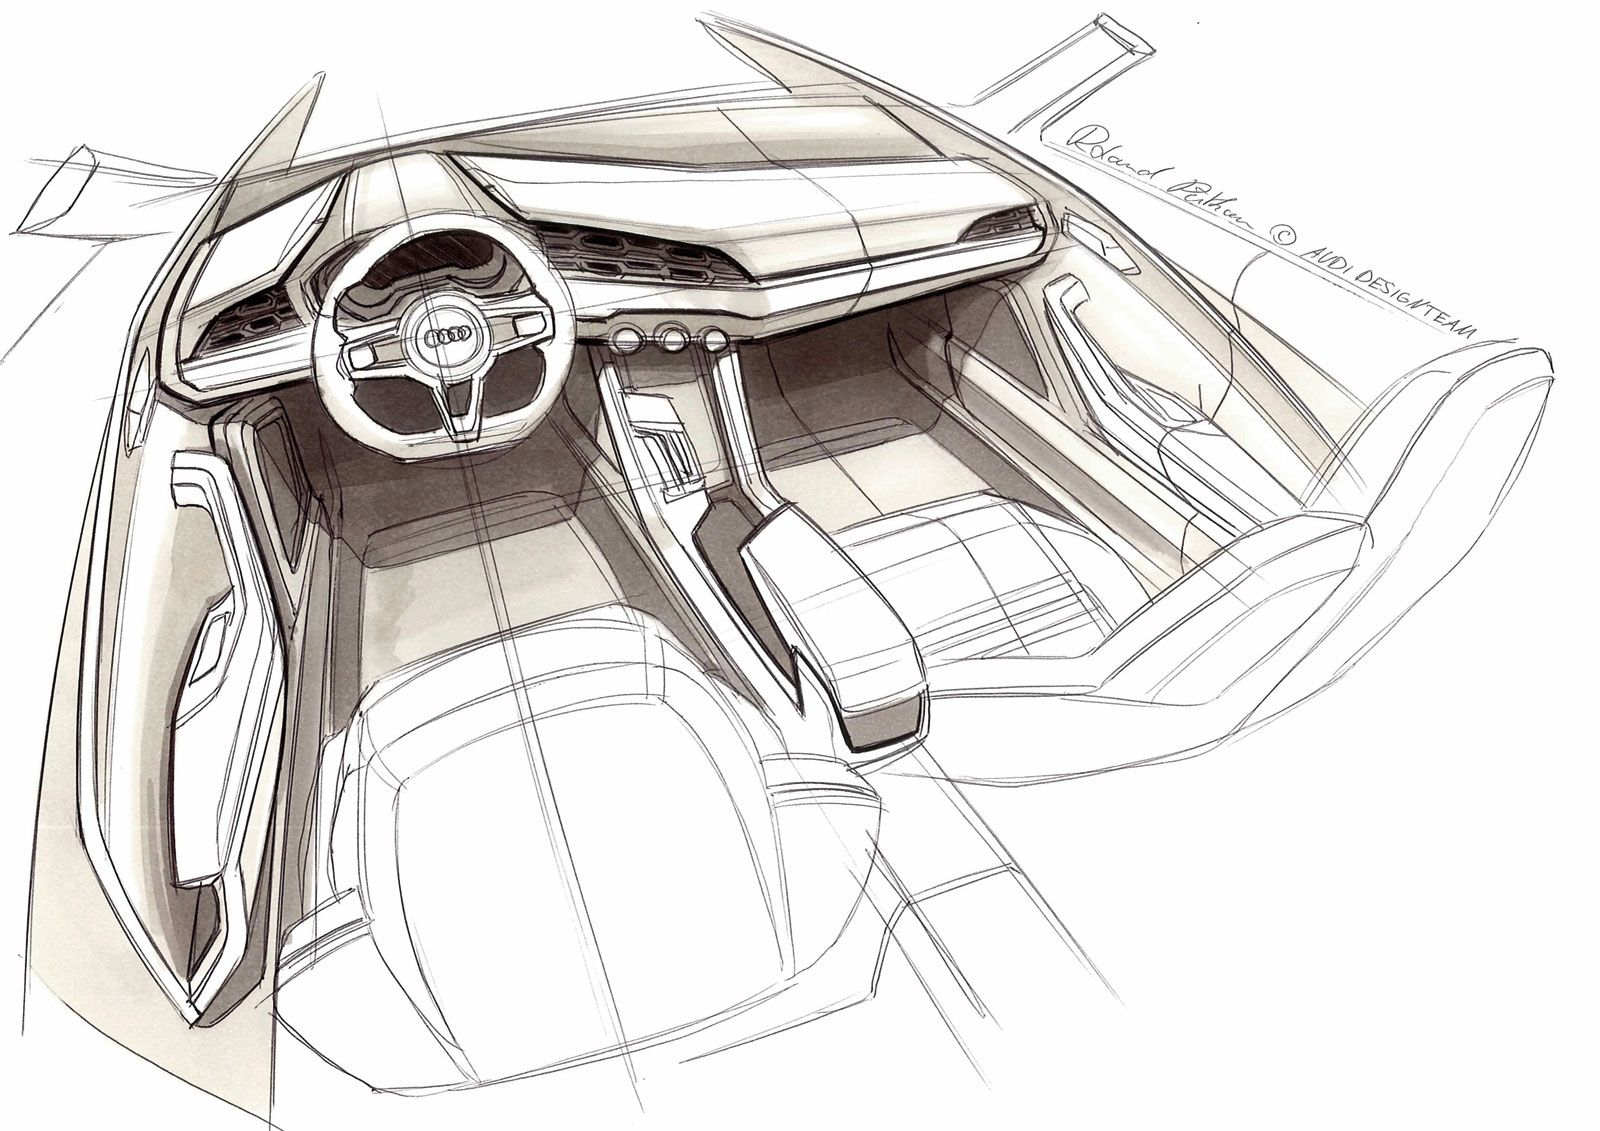 Audi crosslane coupe concept interior design sketch for Interior designs sketches